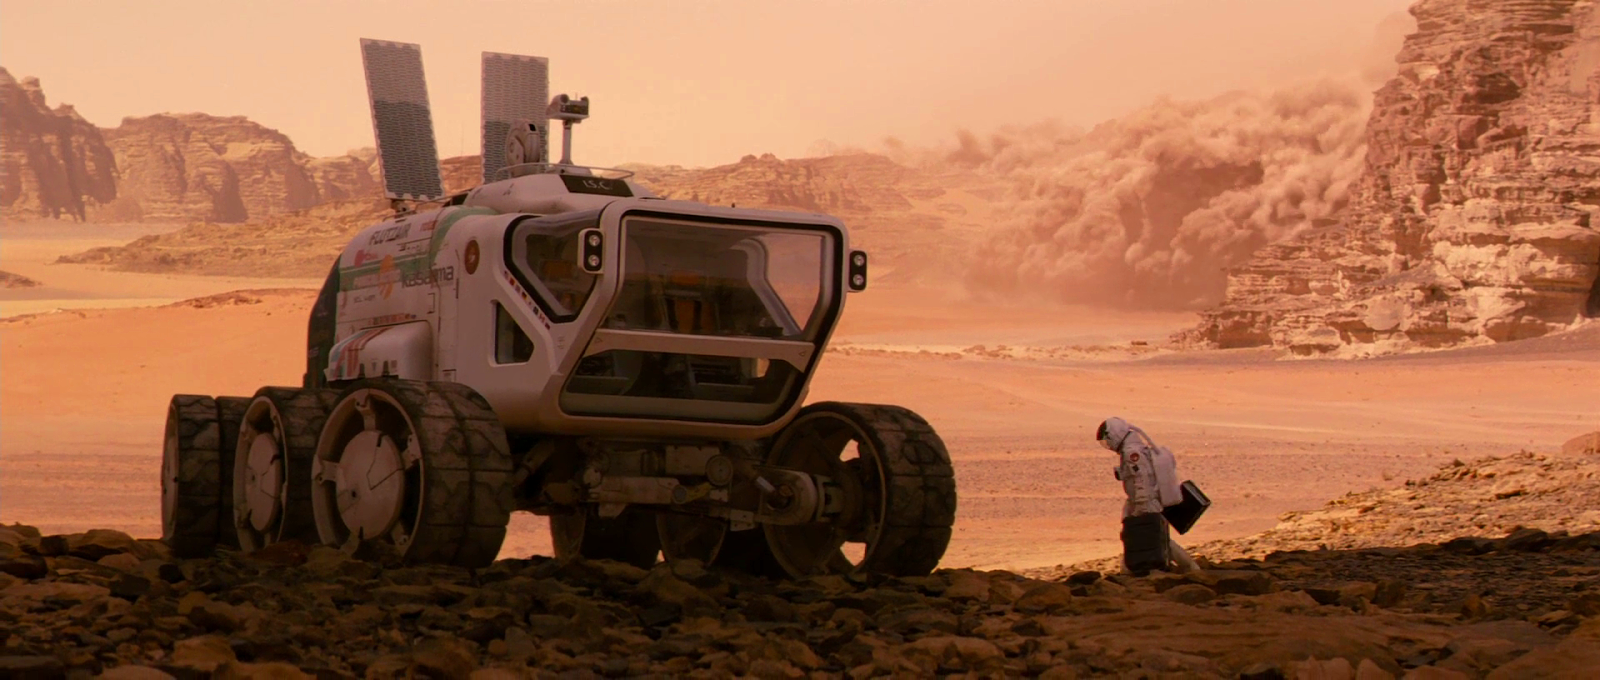 human Mars: Images from The last days on Mars movie